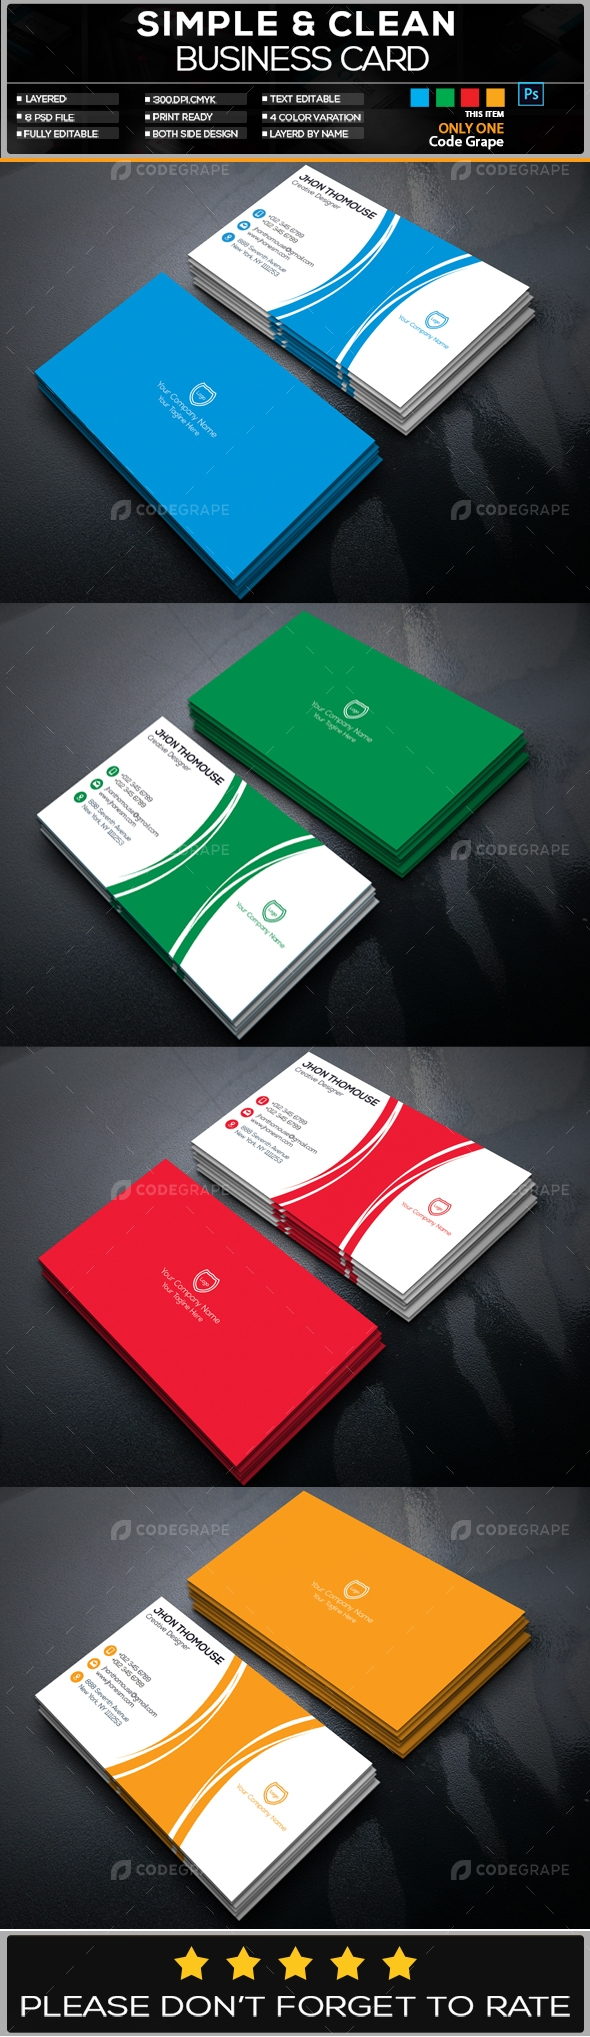 Business Card Vol - 4